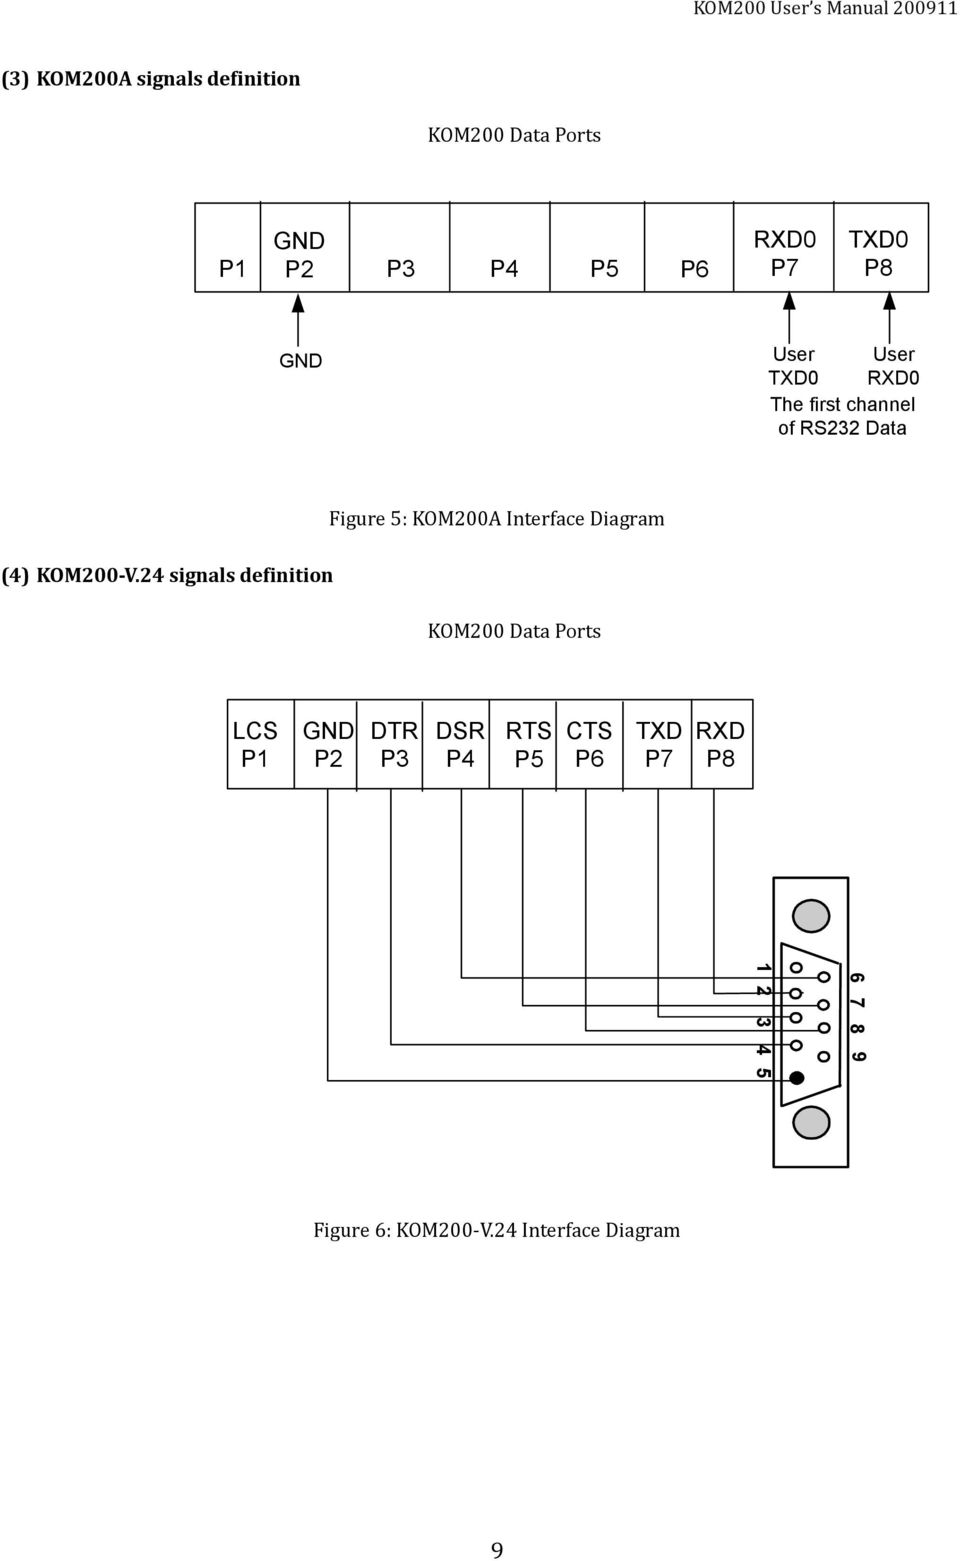 24 signals definition Figure 5: KOM200A Interface Diagram KOM200 Data Ports LCS P1 P2